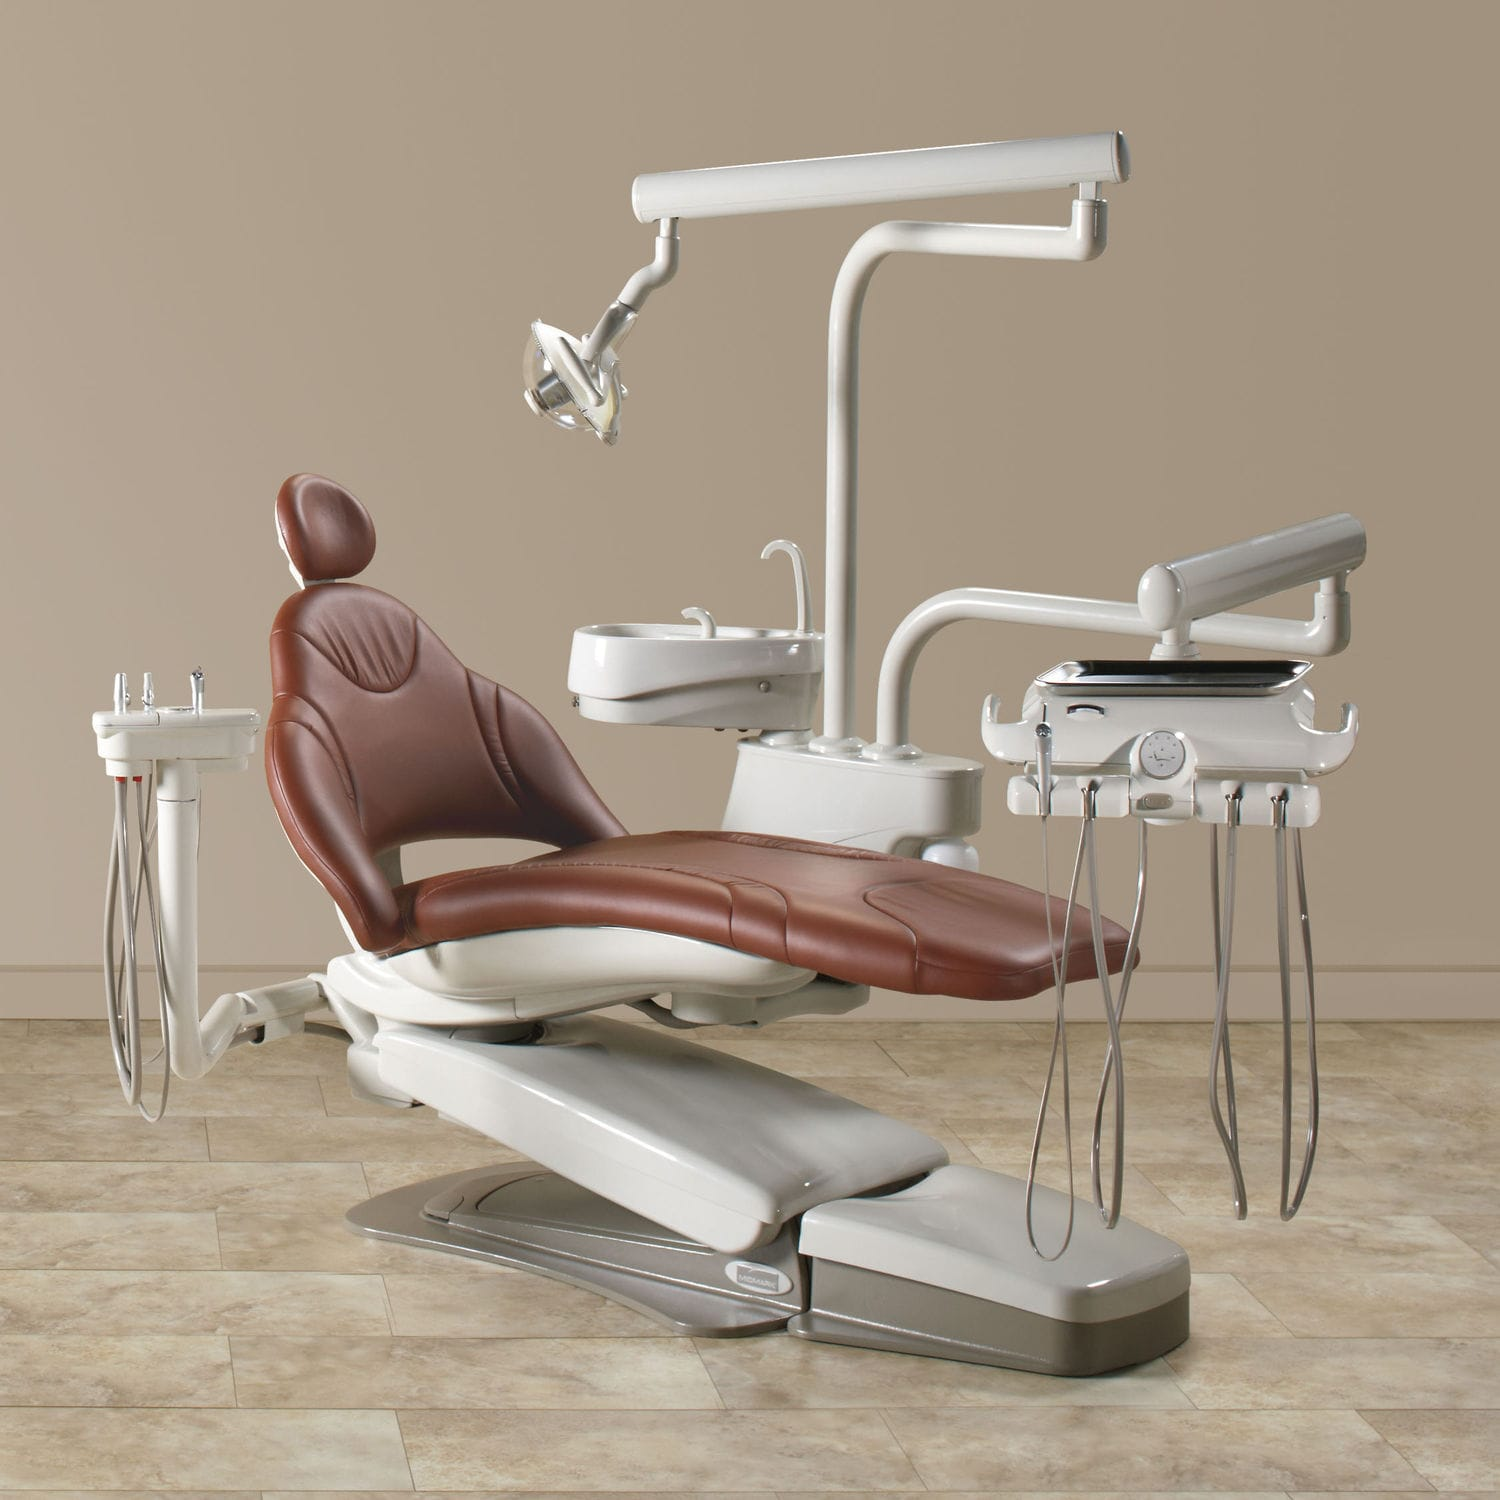 dental treatment unit with hydraulic chair / with light - Elevance® Procenter Operatory & Dental treatment unit with hydraulic chair / with light - Elevance ...